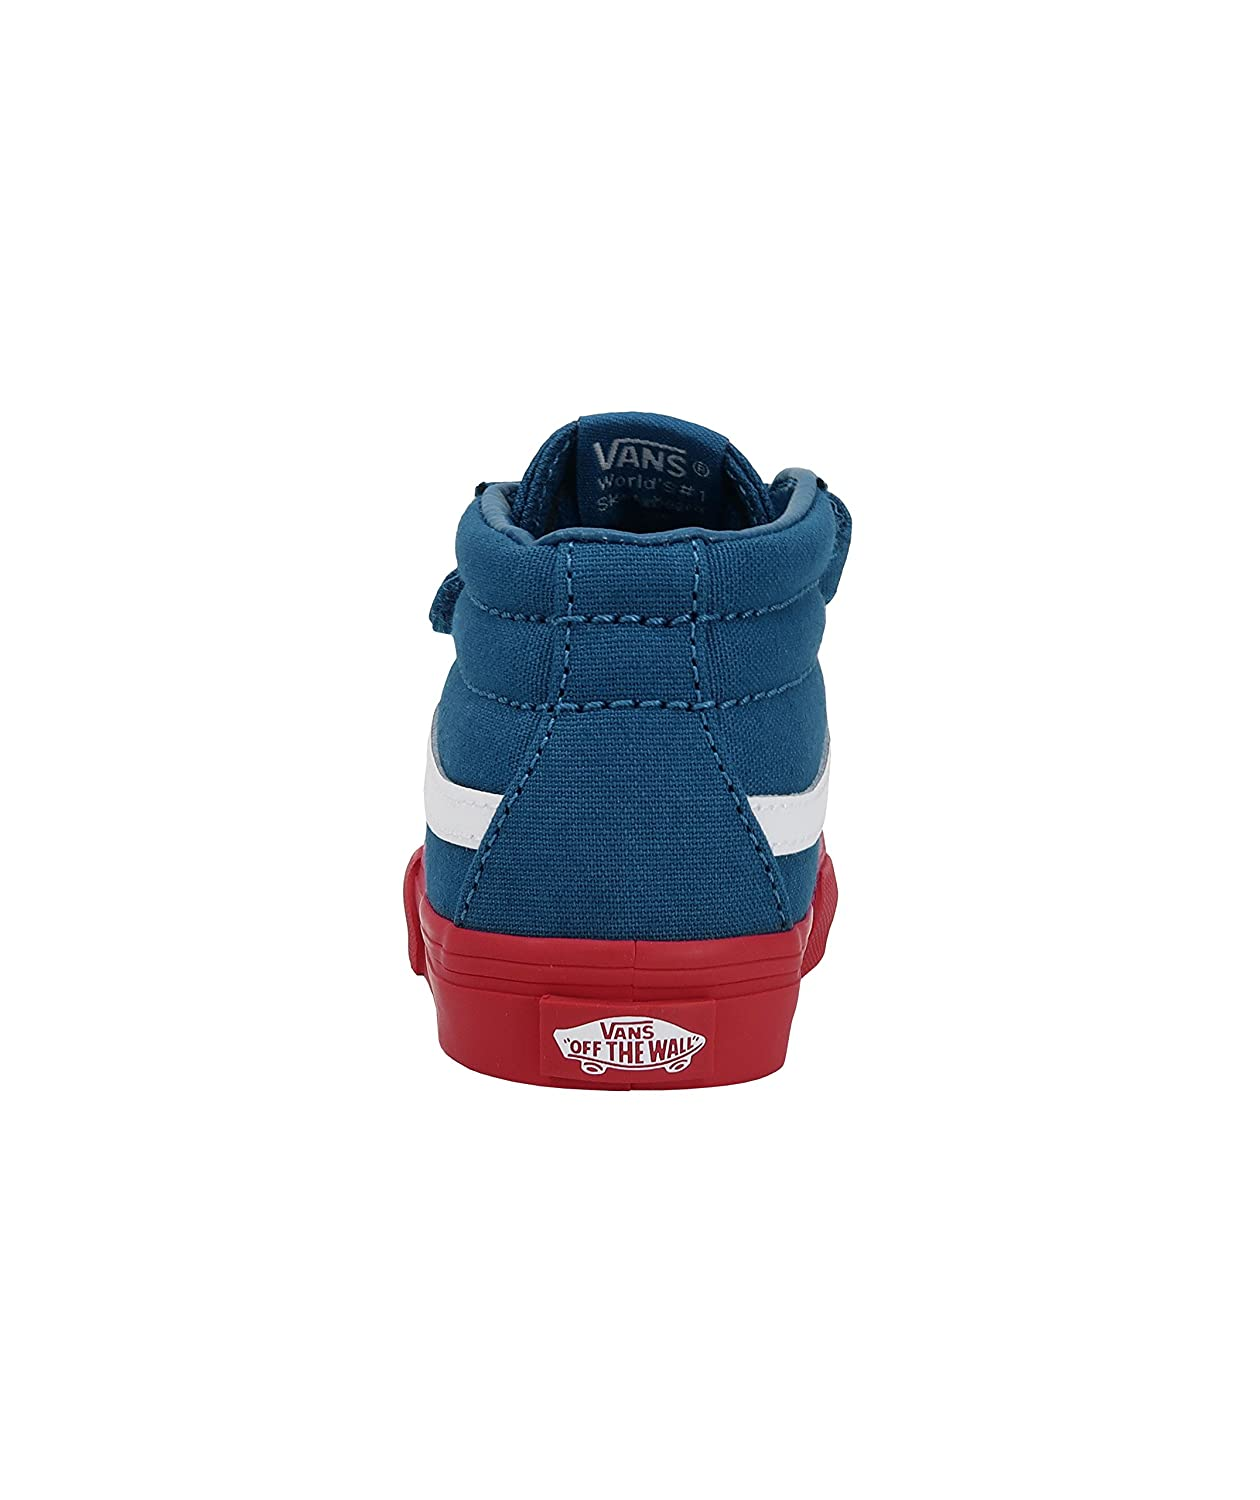 a57c446ad3 Amazon.com  Vans SK8 Mid Reissue V Cosplay Blue Red Infant Toddler Shoes  Boys Girls  Shoes